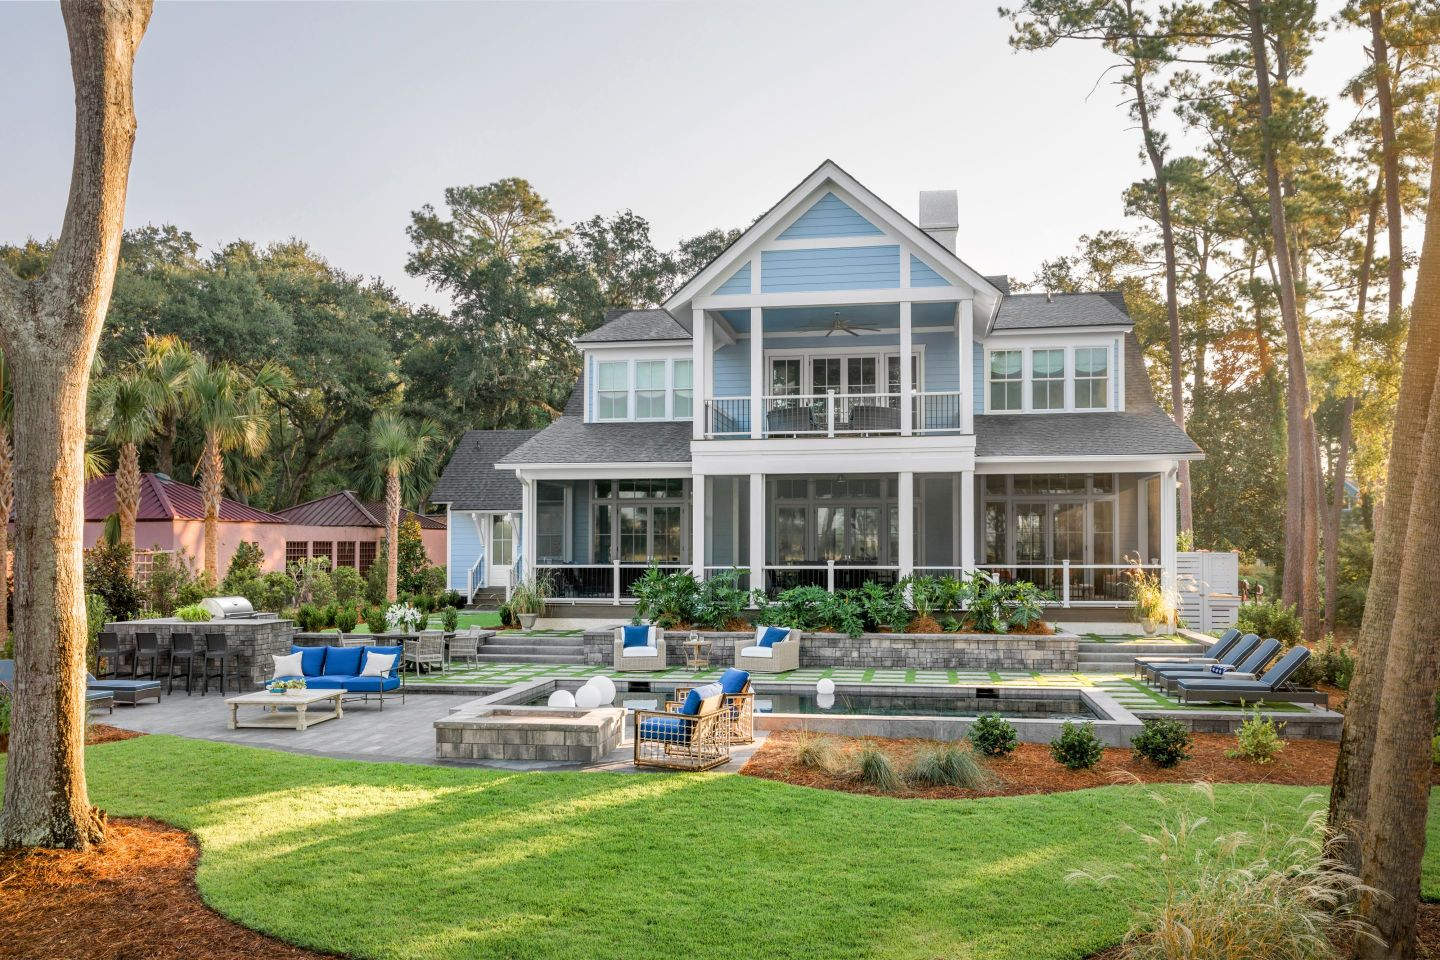 HGTV-Dream-Home-2020-Backyard-1440x960 Lowcountry Vacation Home Style in Hilton Head with HGTV Dream Home 2020